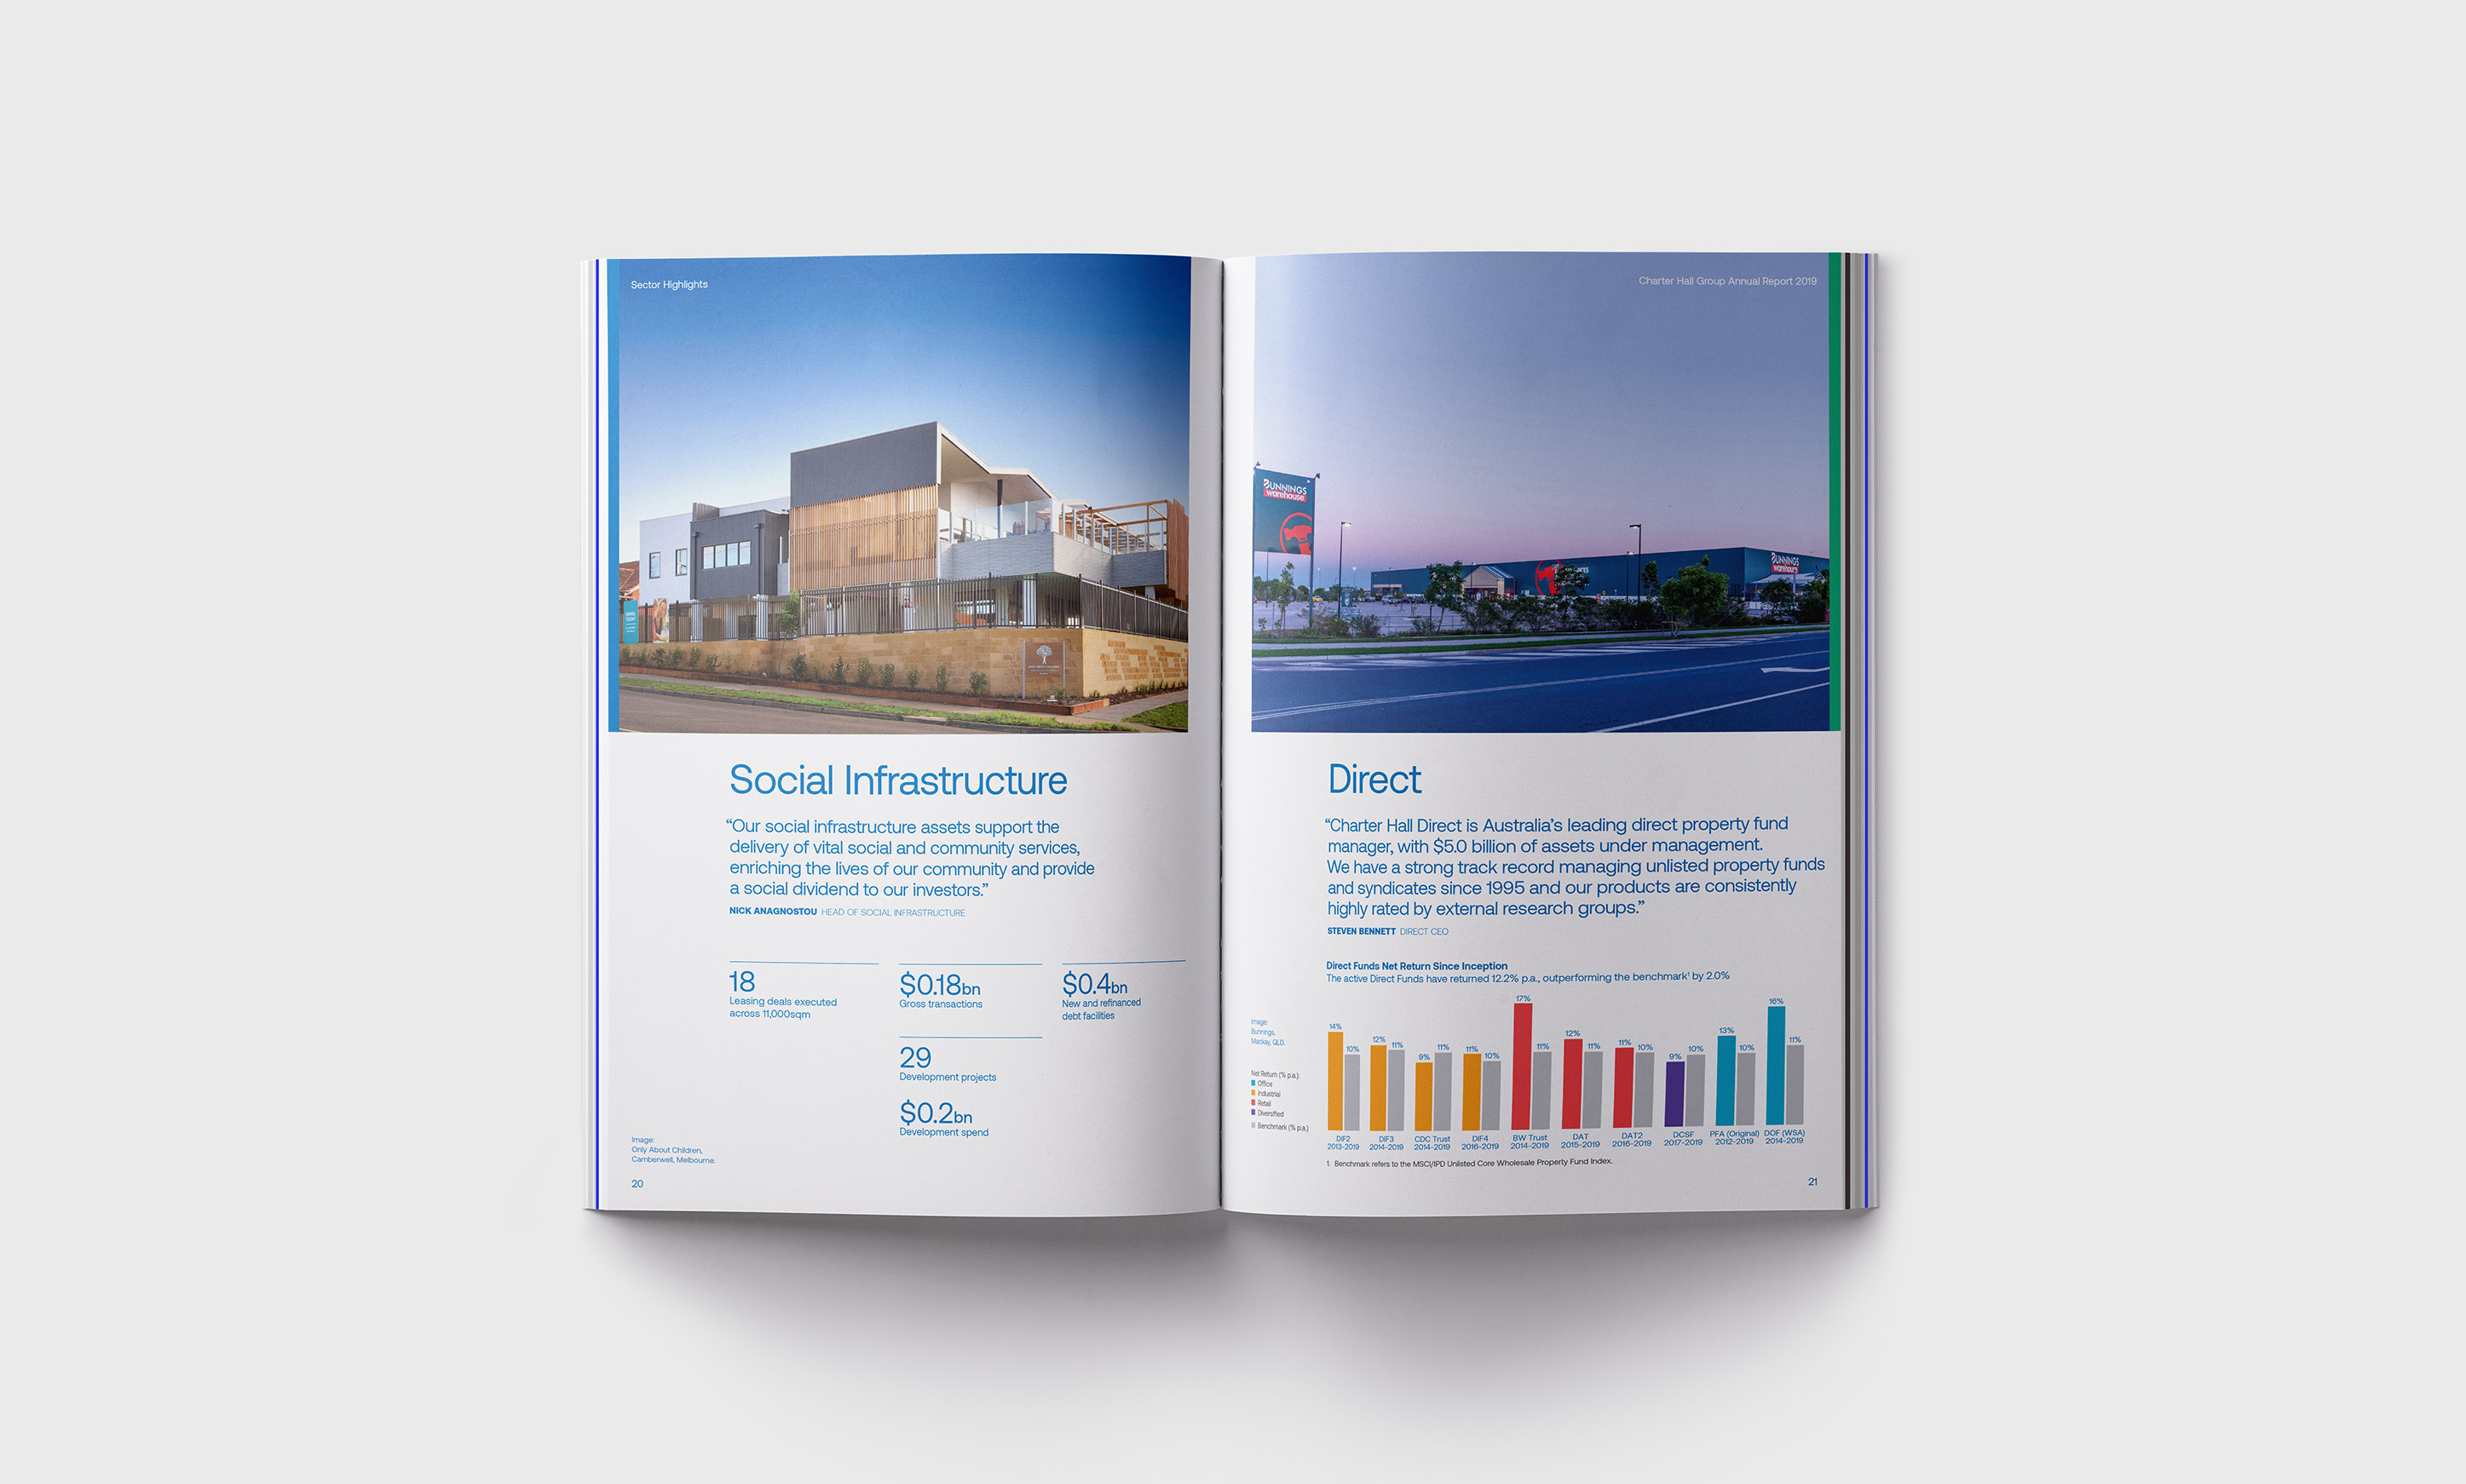 Charter Hall Annual Report. 'Social Infrastructure' and 'Direct' inside spreads.